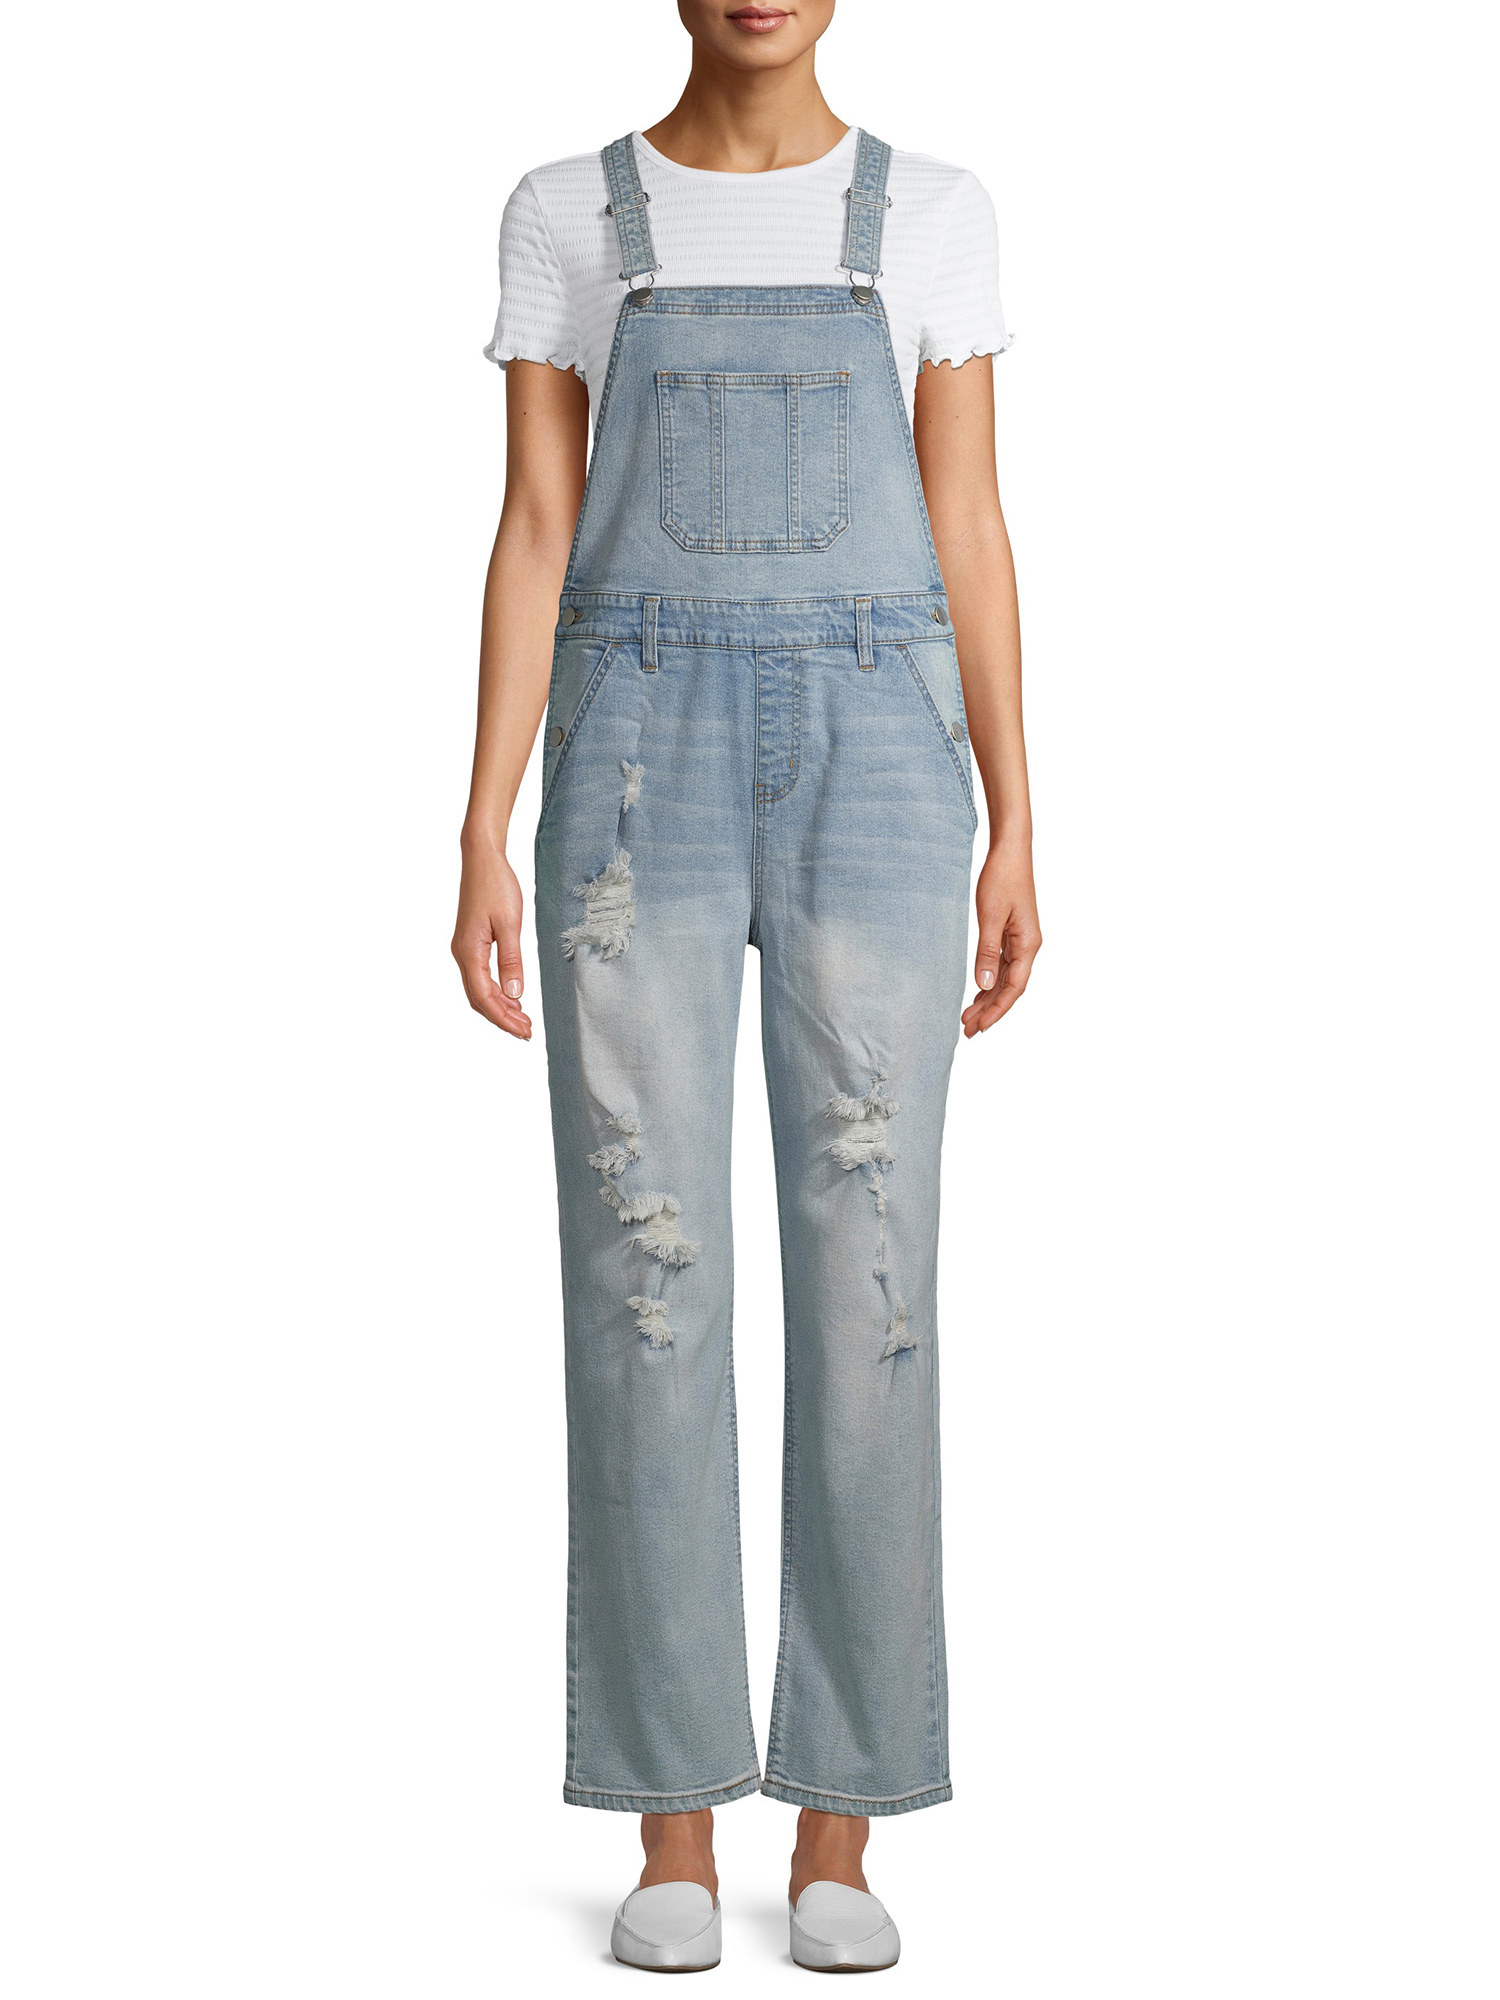 person with a pair of light blue overalls